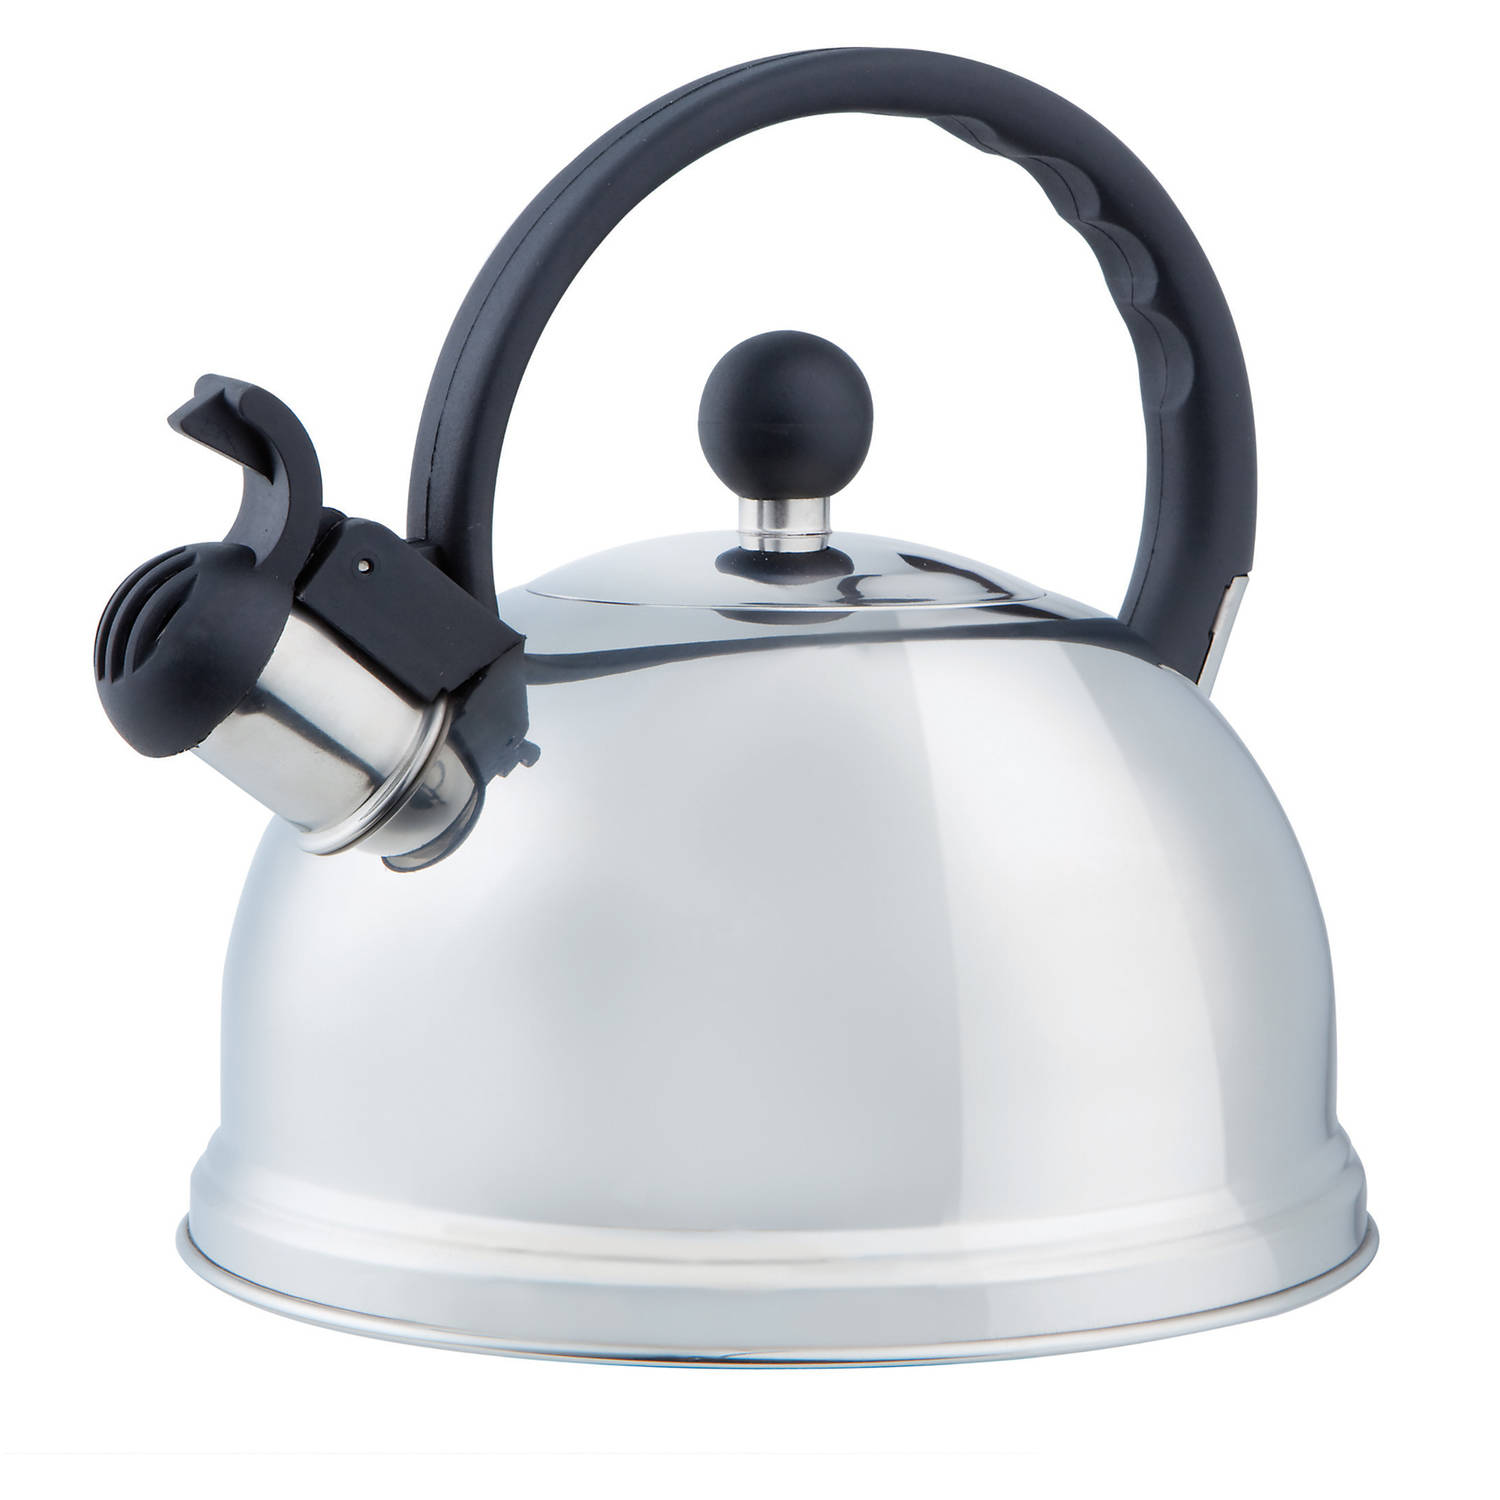 Kitchen Details Chrome Finish Tea Kettle